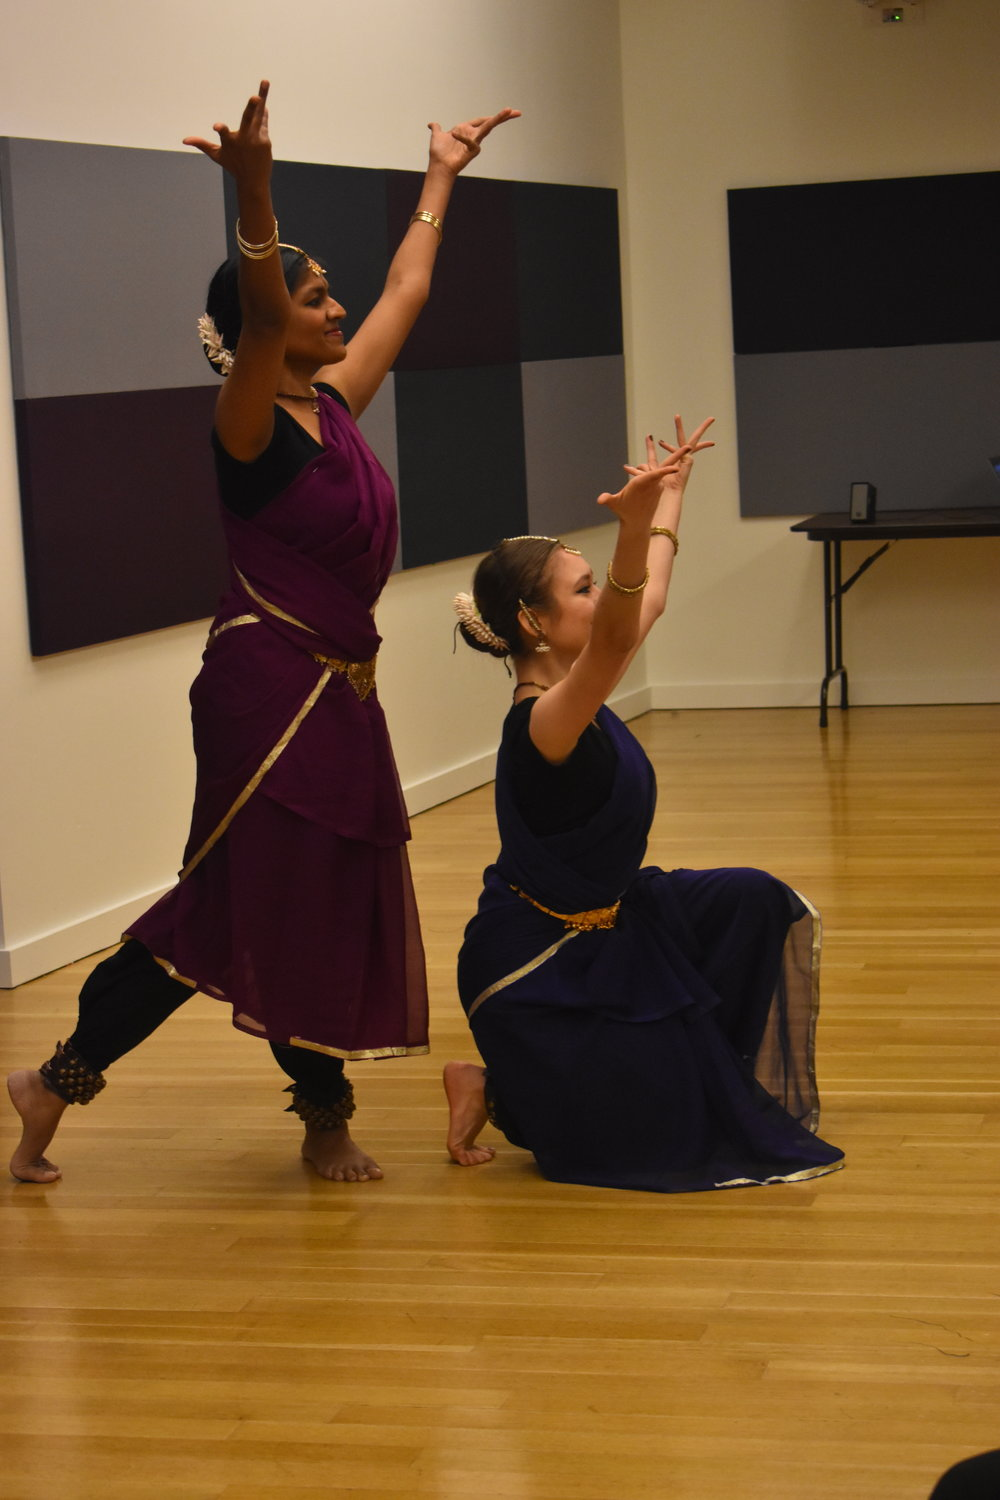 Sophia Salingaros and Shilpa Darivemula perform Tara's (Dis) Ability, an exploration of how in illness, body parts fall out of harmony. Photo by Mollie Block